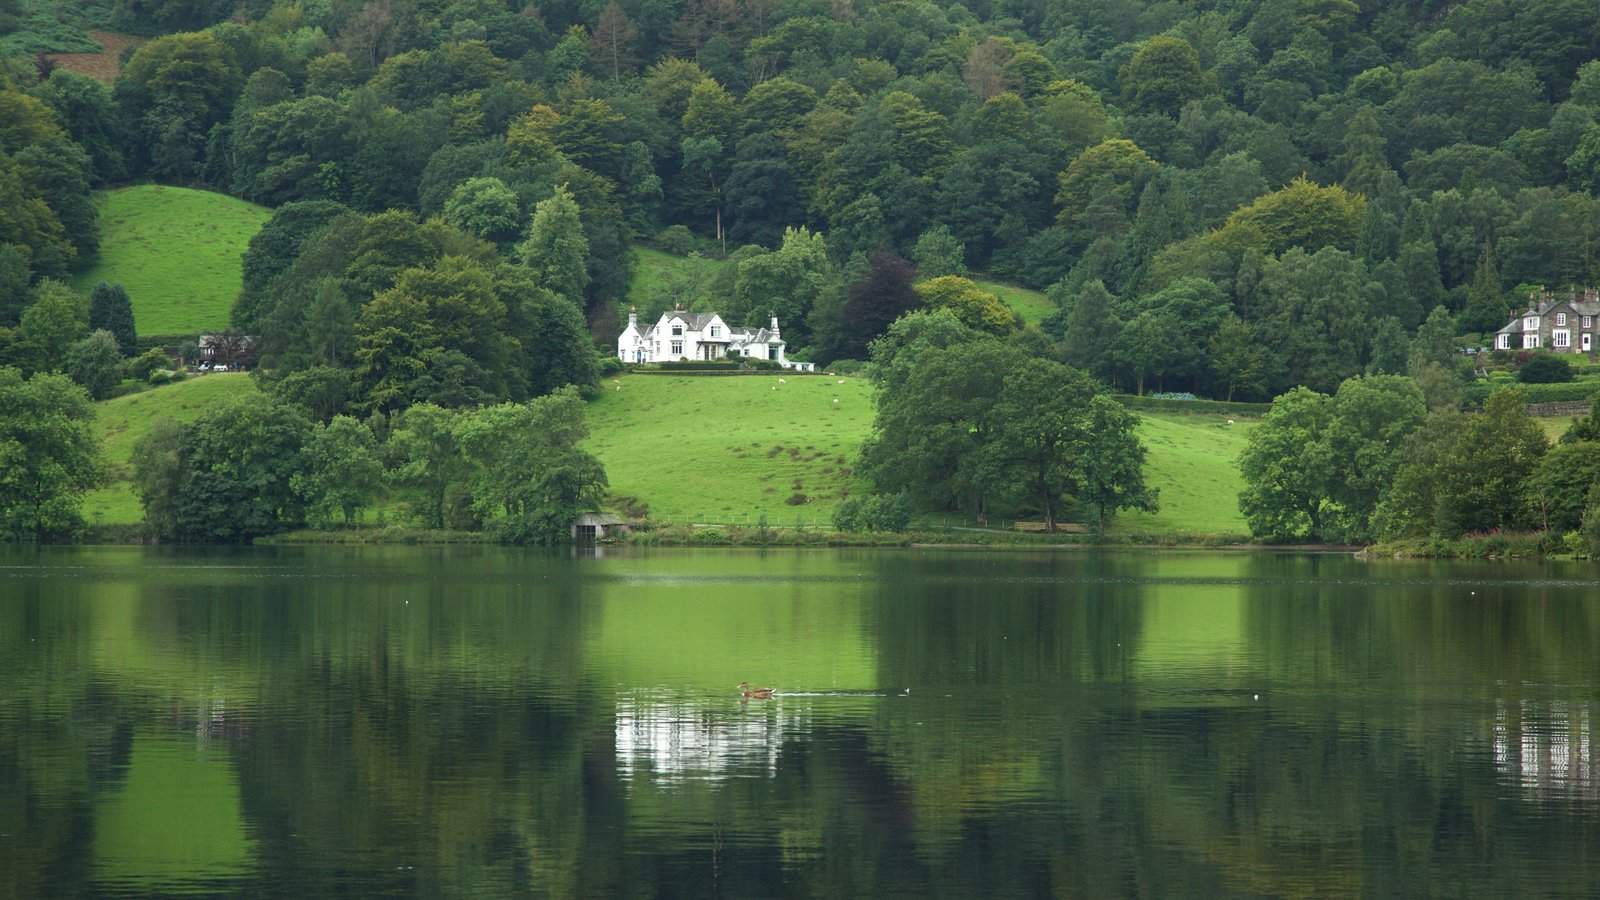 Grasmere United Kingdom  city pictures gallery : Grasmere which includes a lake or waterhole and forests